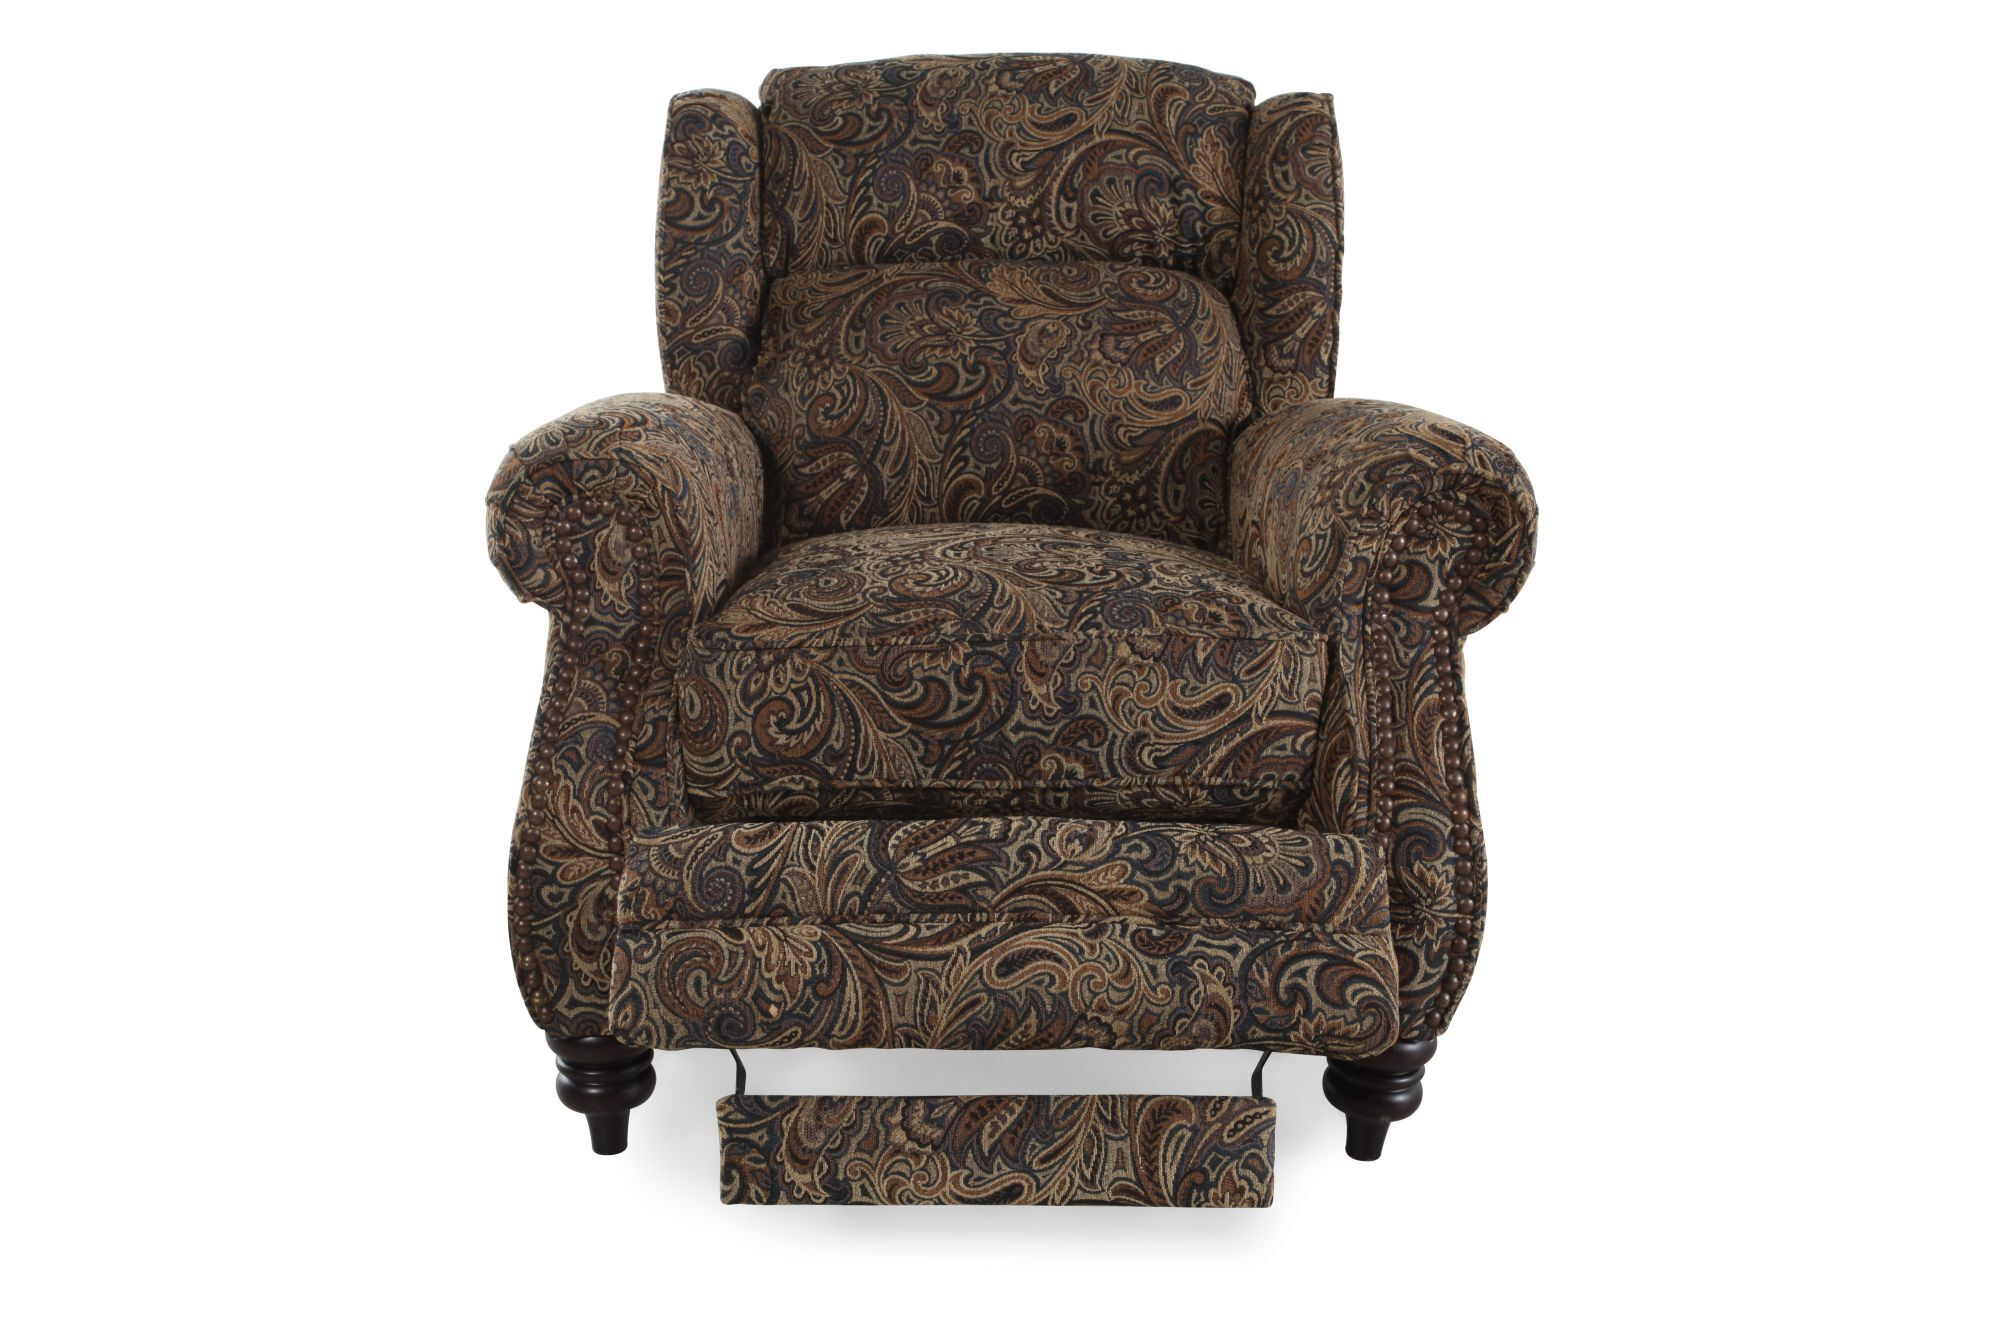 Lane Norwich Persian Recliner  sc 1 st  Mathis Brothers & Lane Norwich Persian Recliner | Mathis Brothers Furniture islam-shia.org